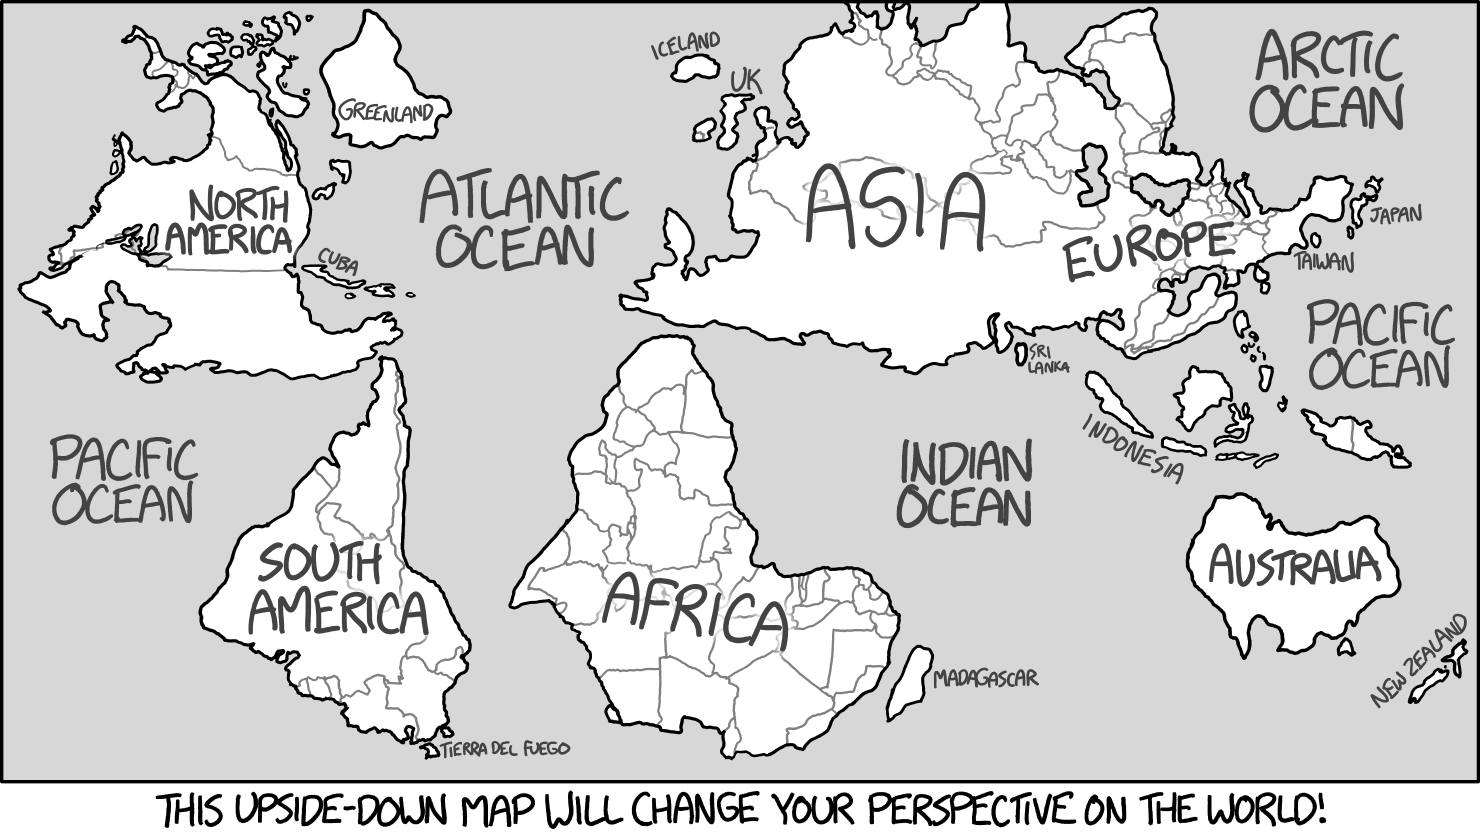 xkcd: Upside-Down Map